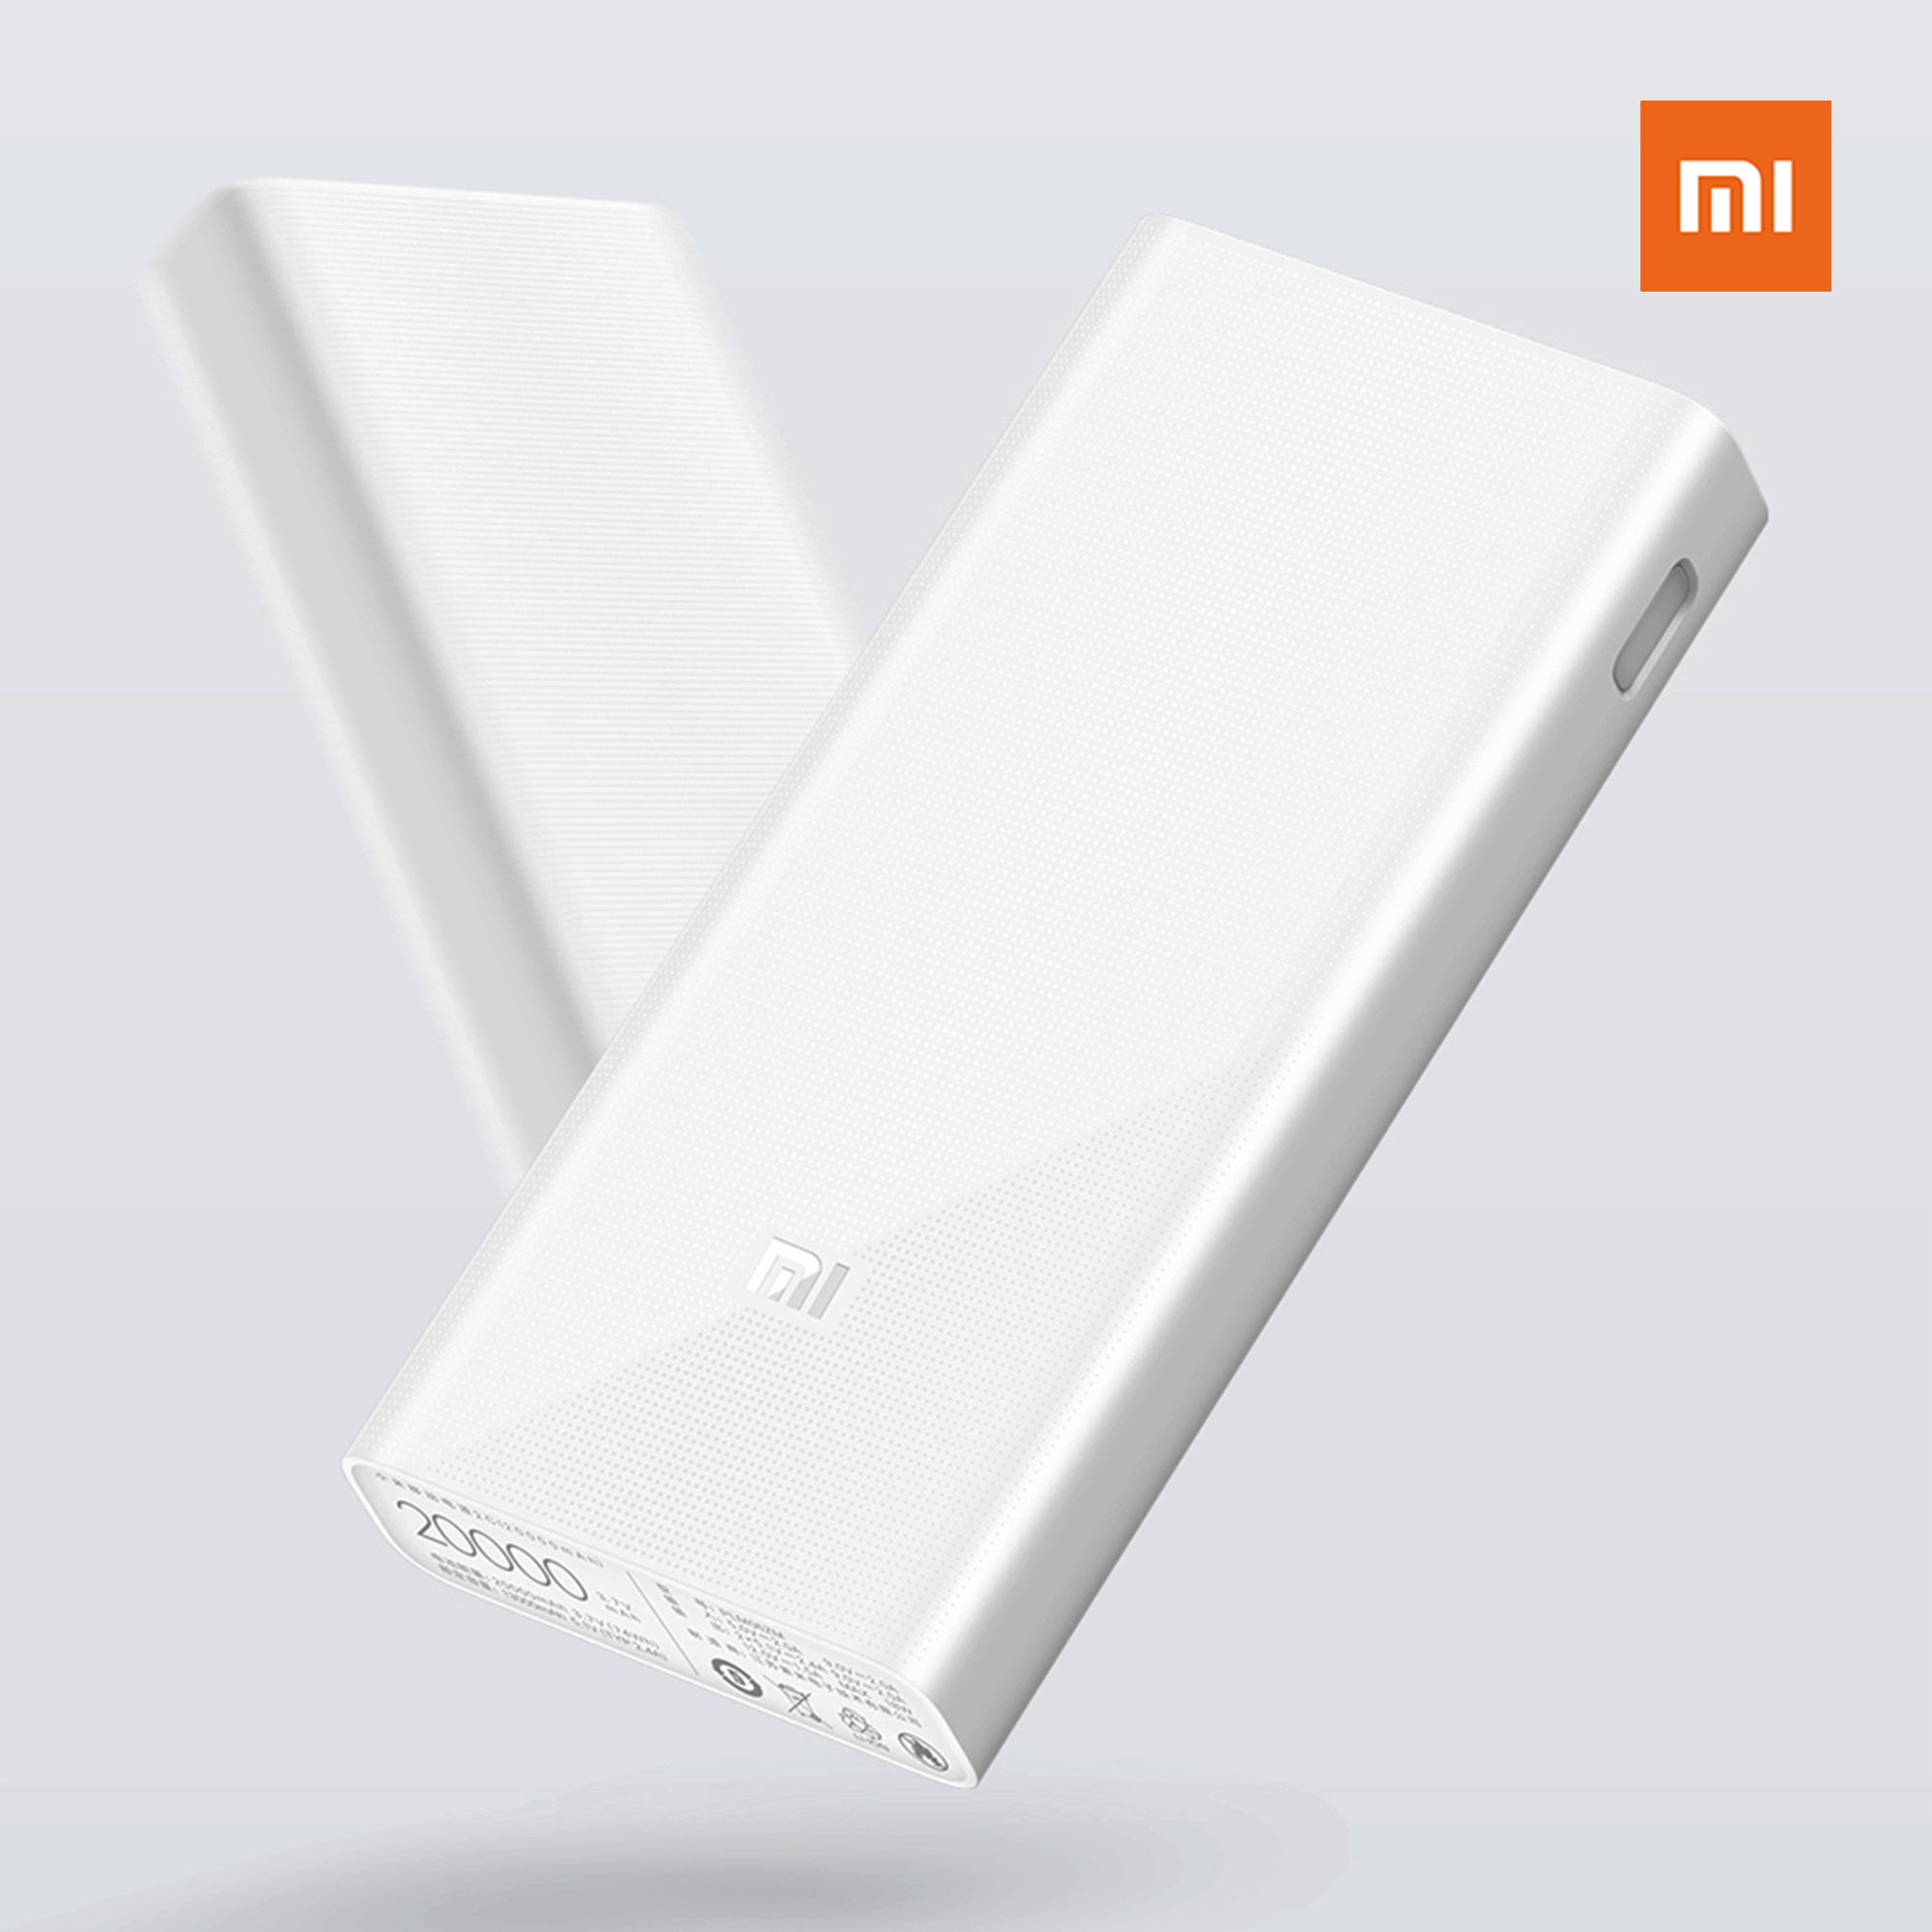 Mi PowerBank 20000mah 2C